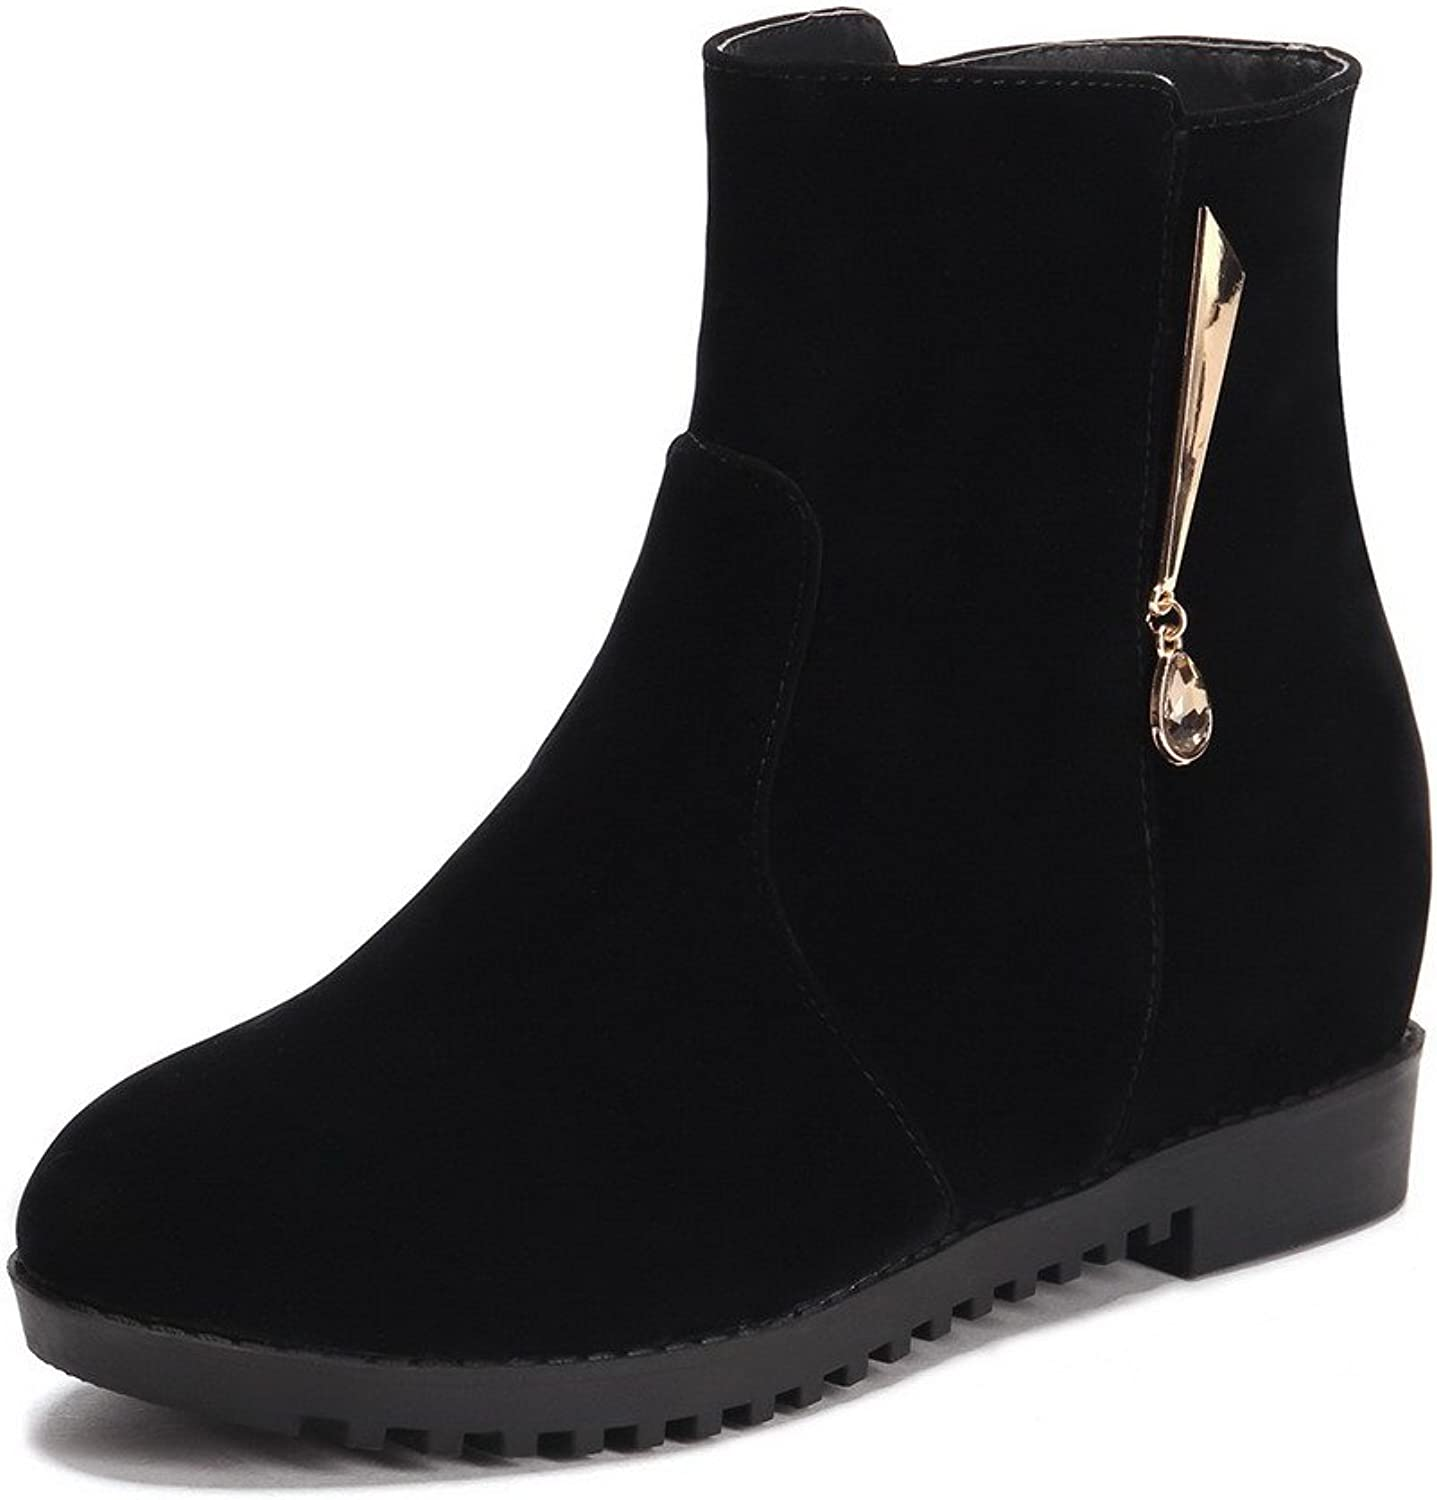 WeenFashion Women's Round Closed Toe Kitten-Heels Frosted Solid Low-Top Boots